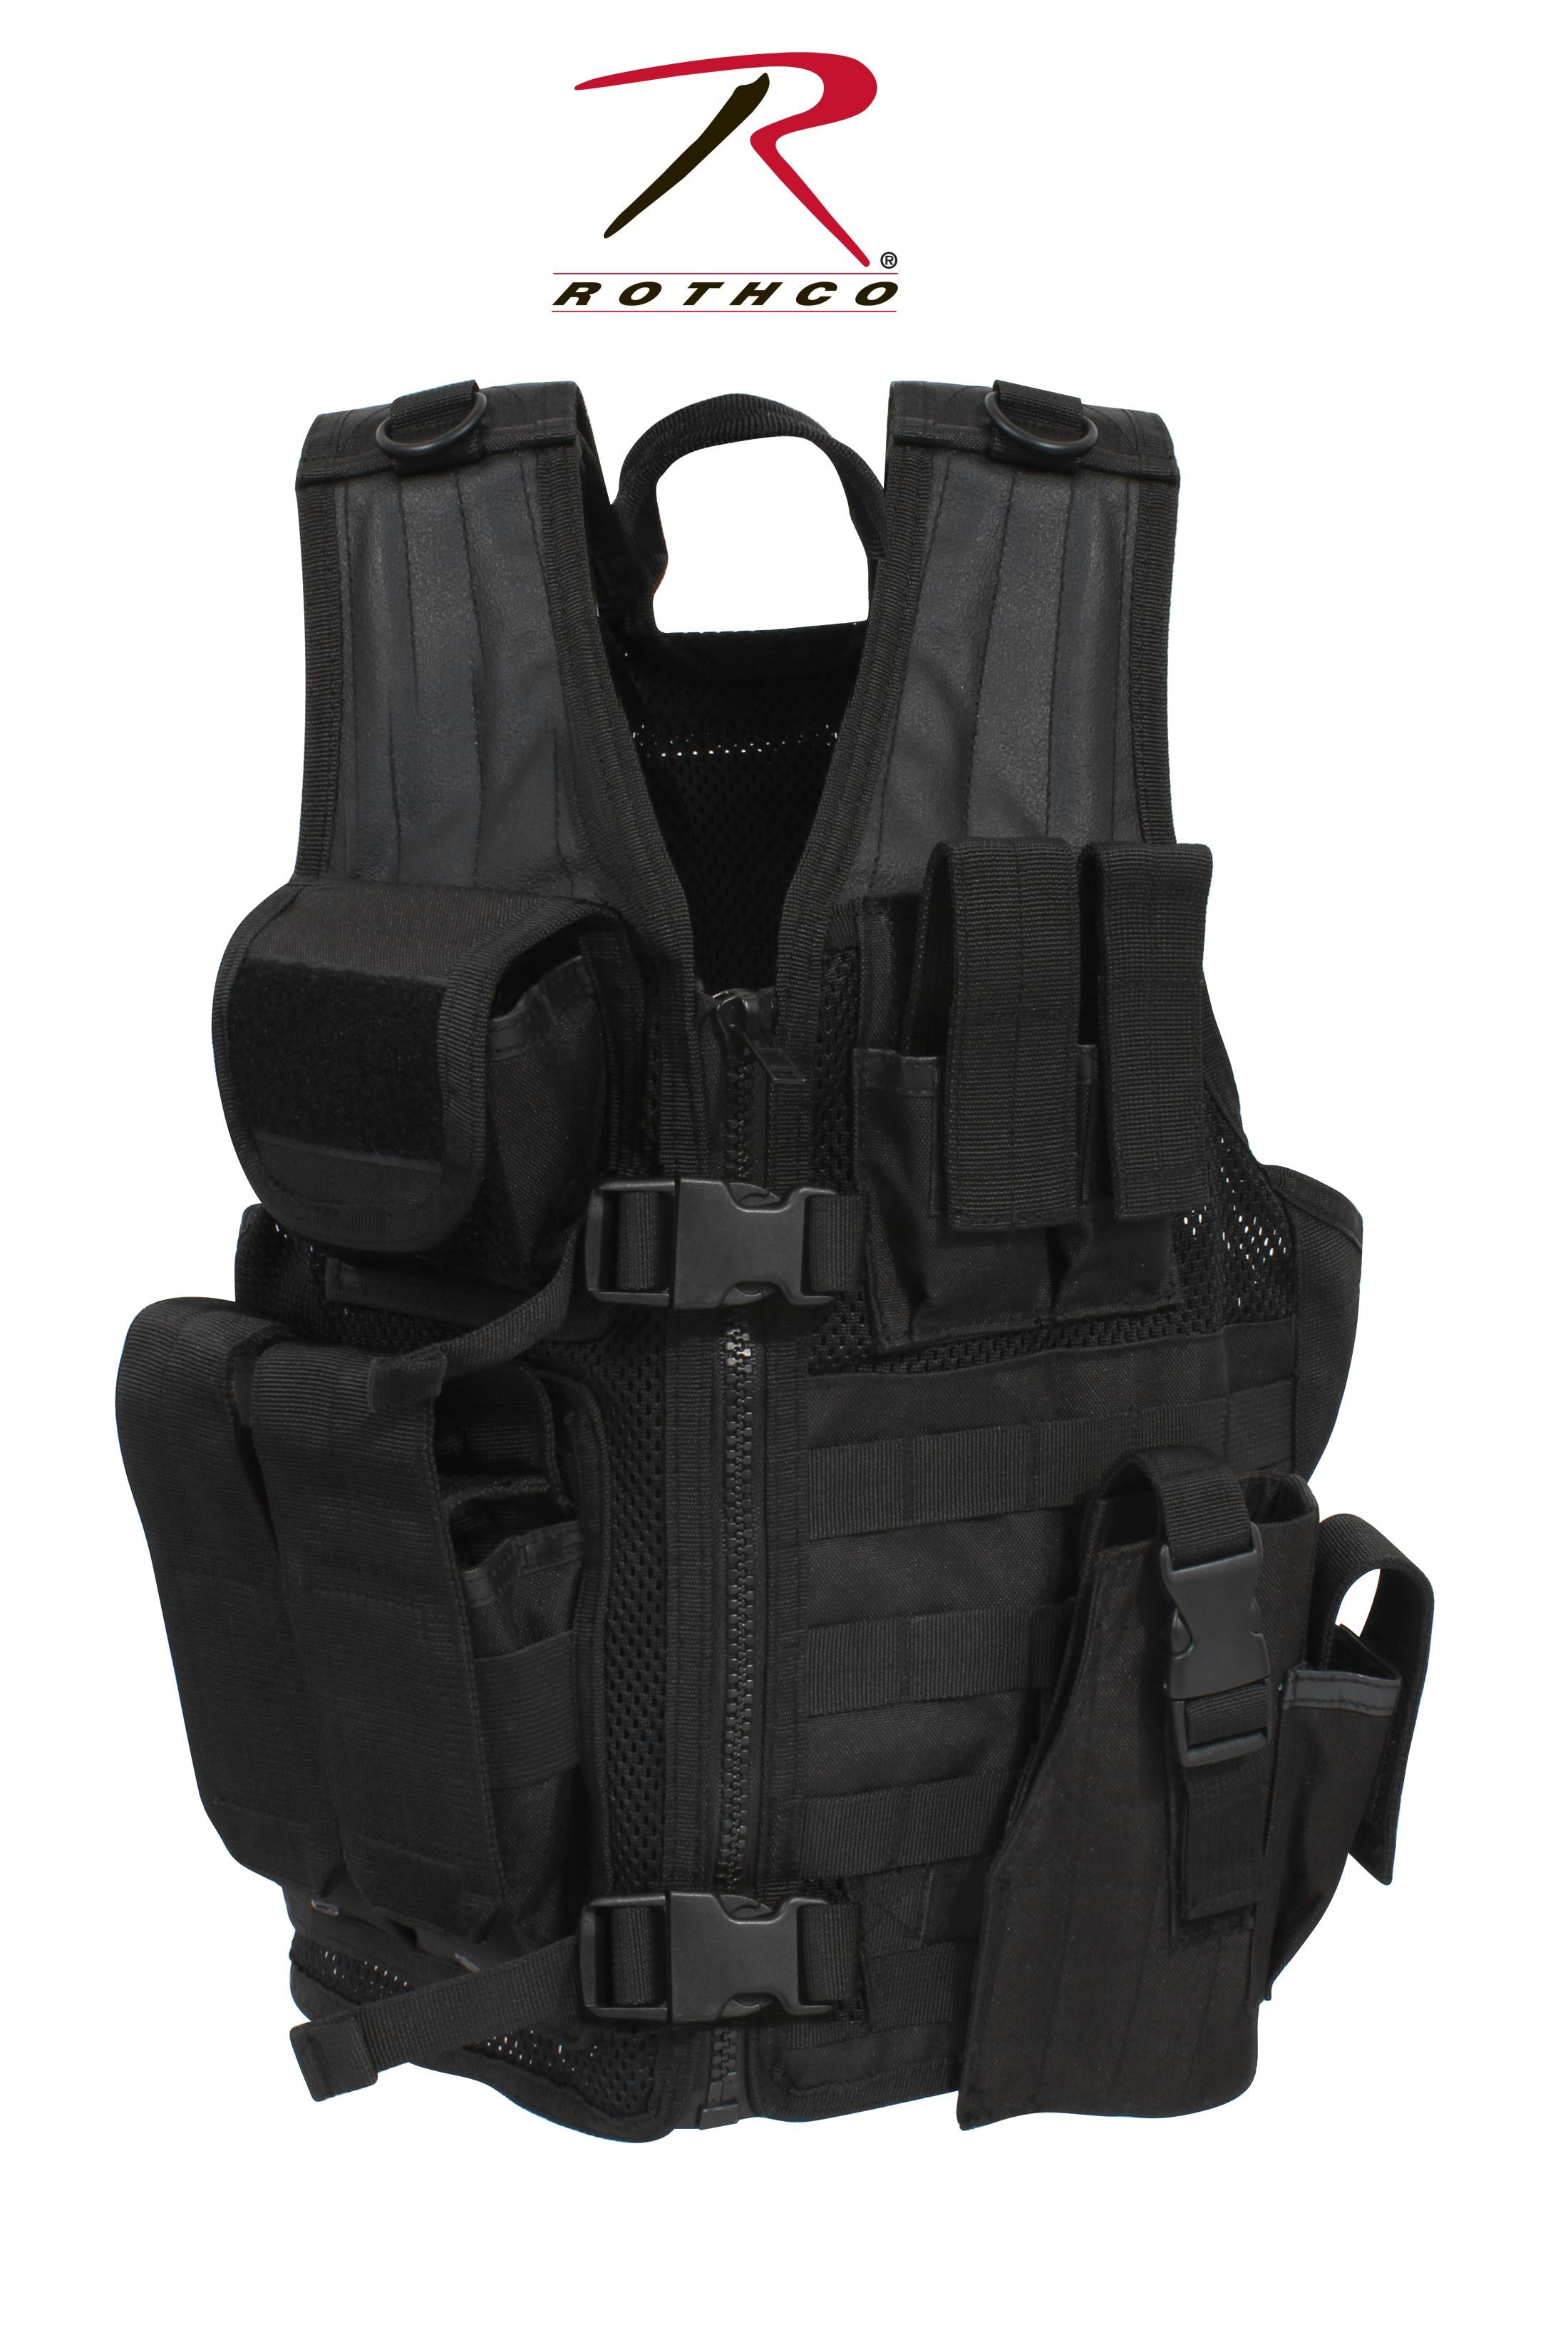 Rothco Kid's Tactical Cross Draw Vest - Black